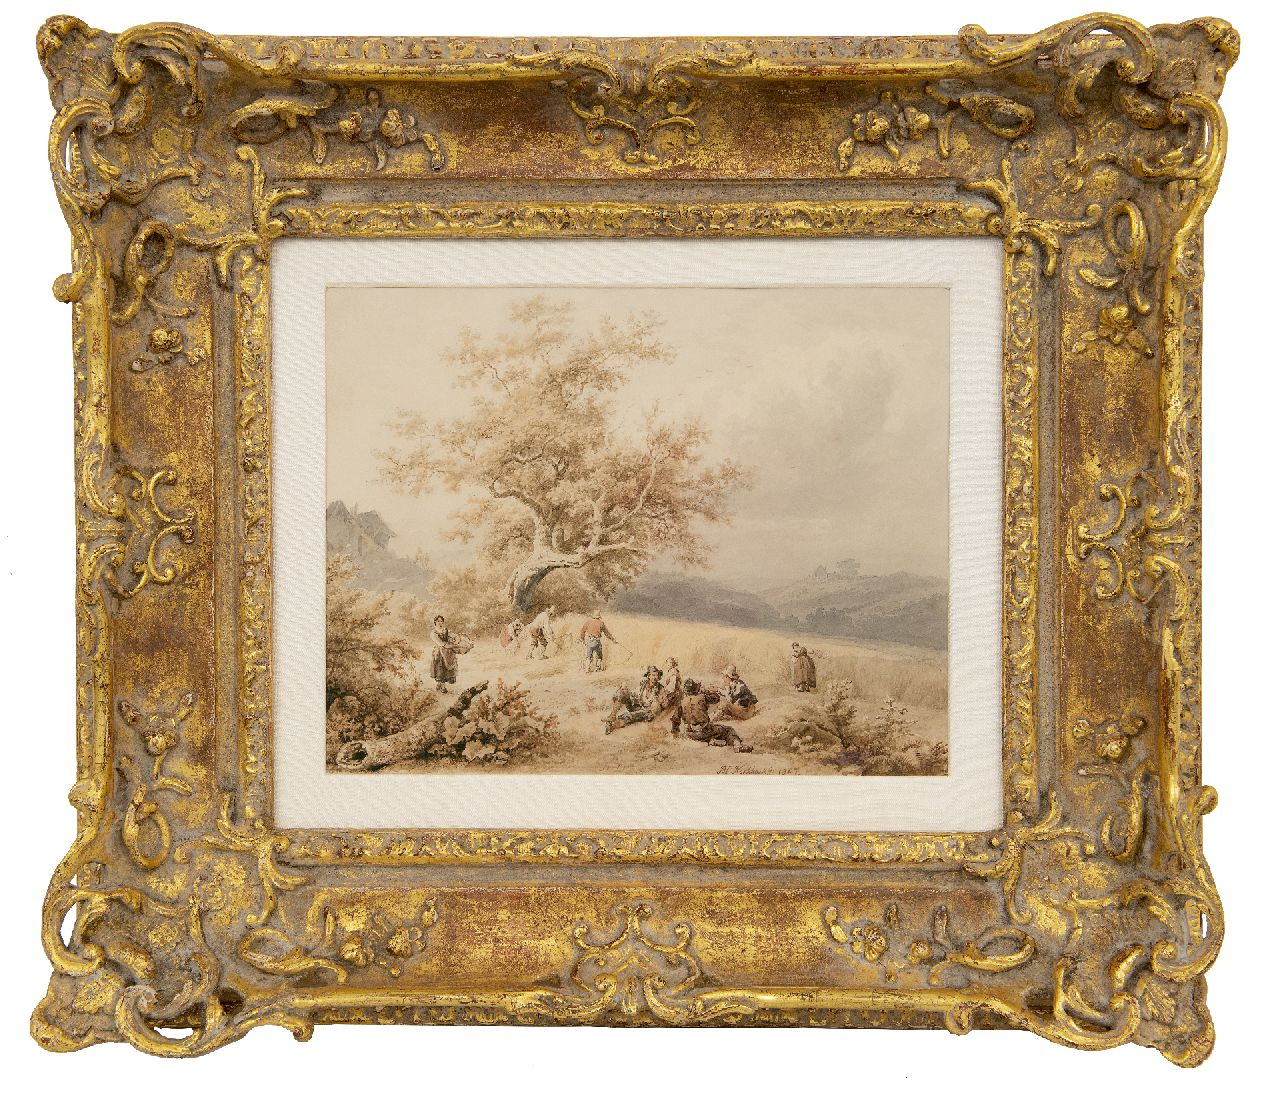 Koekkoek B.C.  | Barend Cornelis Koekkoek | Watercolours and drawings offered for sale | Harvest time, Luxemburg, ink and watercolour on paper 19.6 x 24.9 cm, signed l.c. and dated 1847